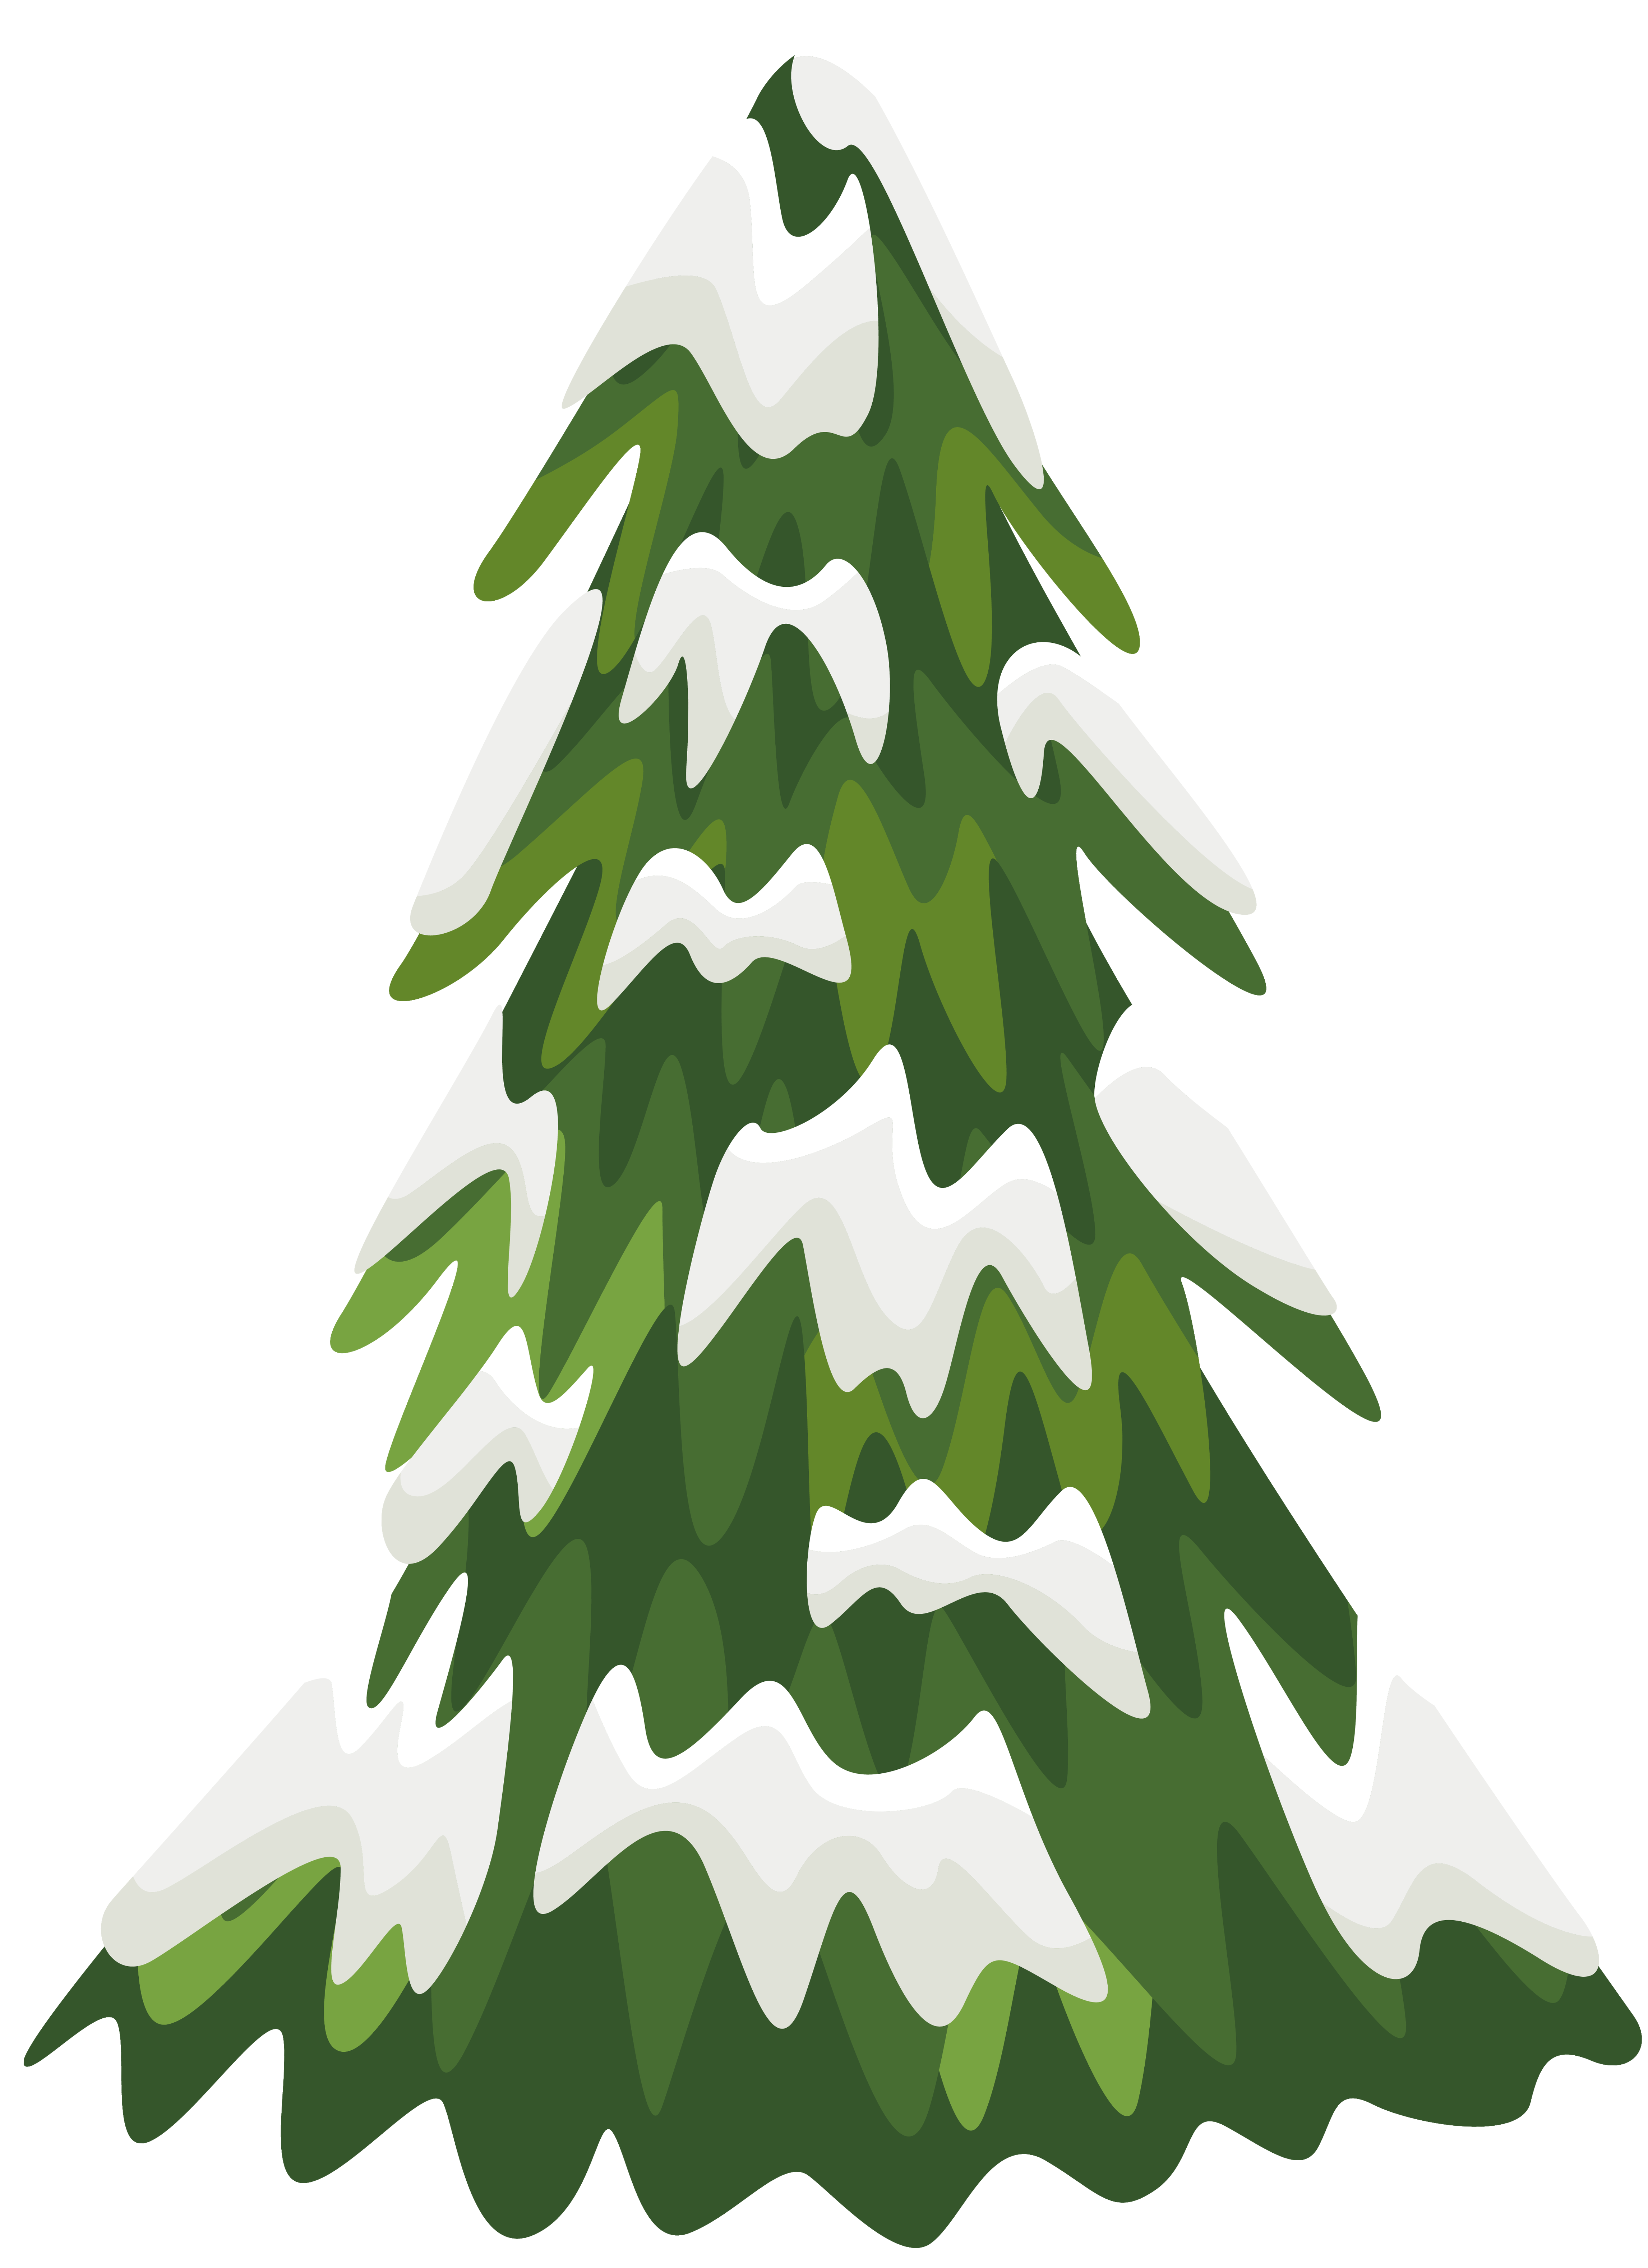 4587x6313 Snowy Pine Tree Png Clipart Imageu200b Gallery Yopriceville